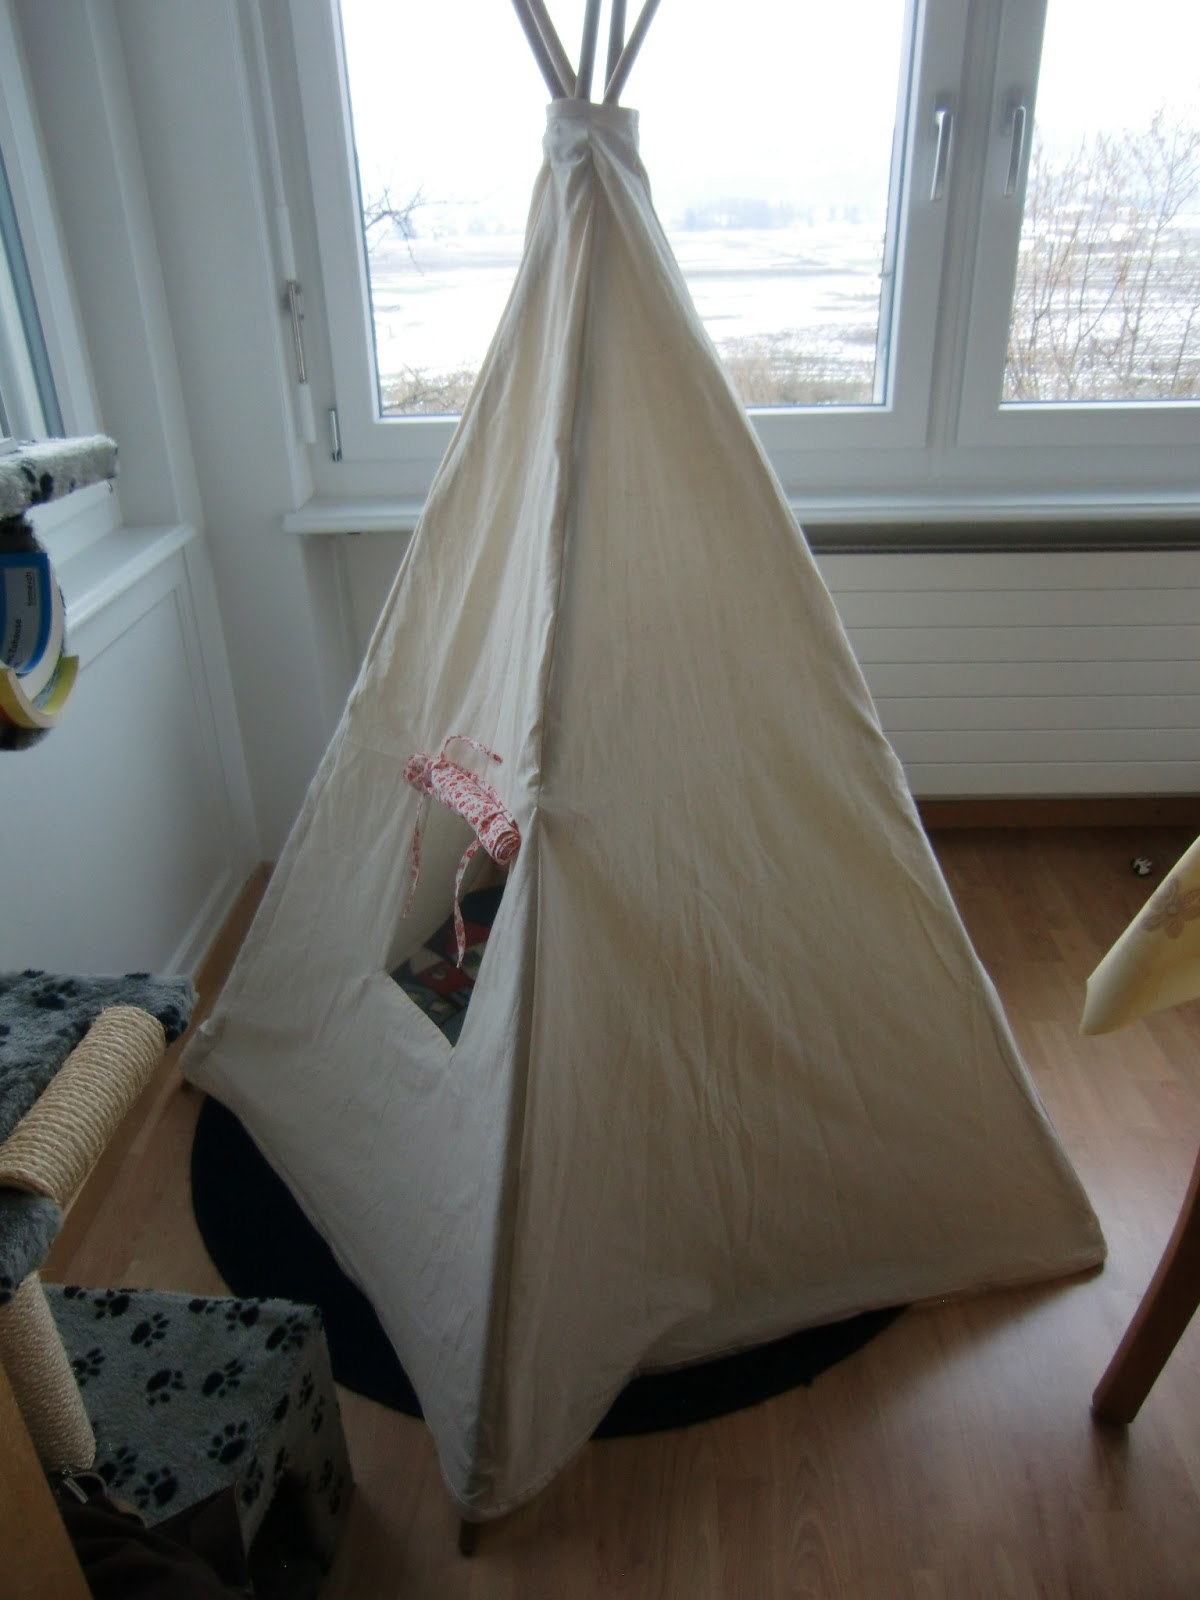 die gute pfarrfrau ein tipi f r 39 s kinderzimmer. Black Bedroom Furniture Sets. Home Design Ideas